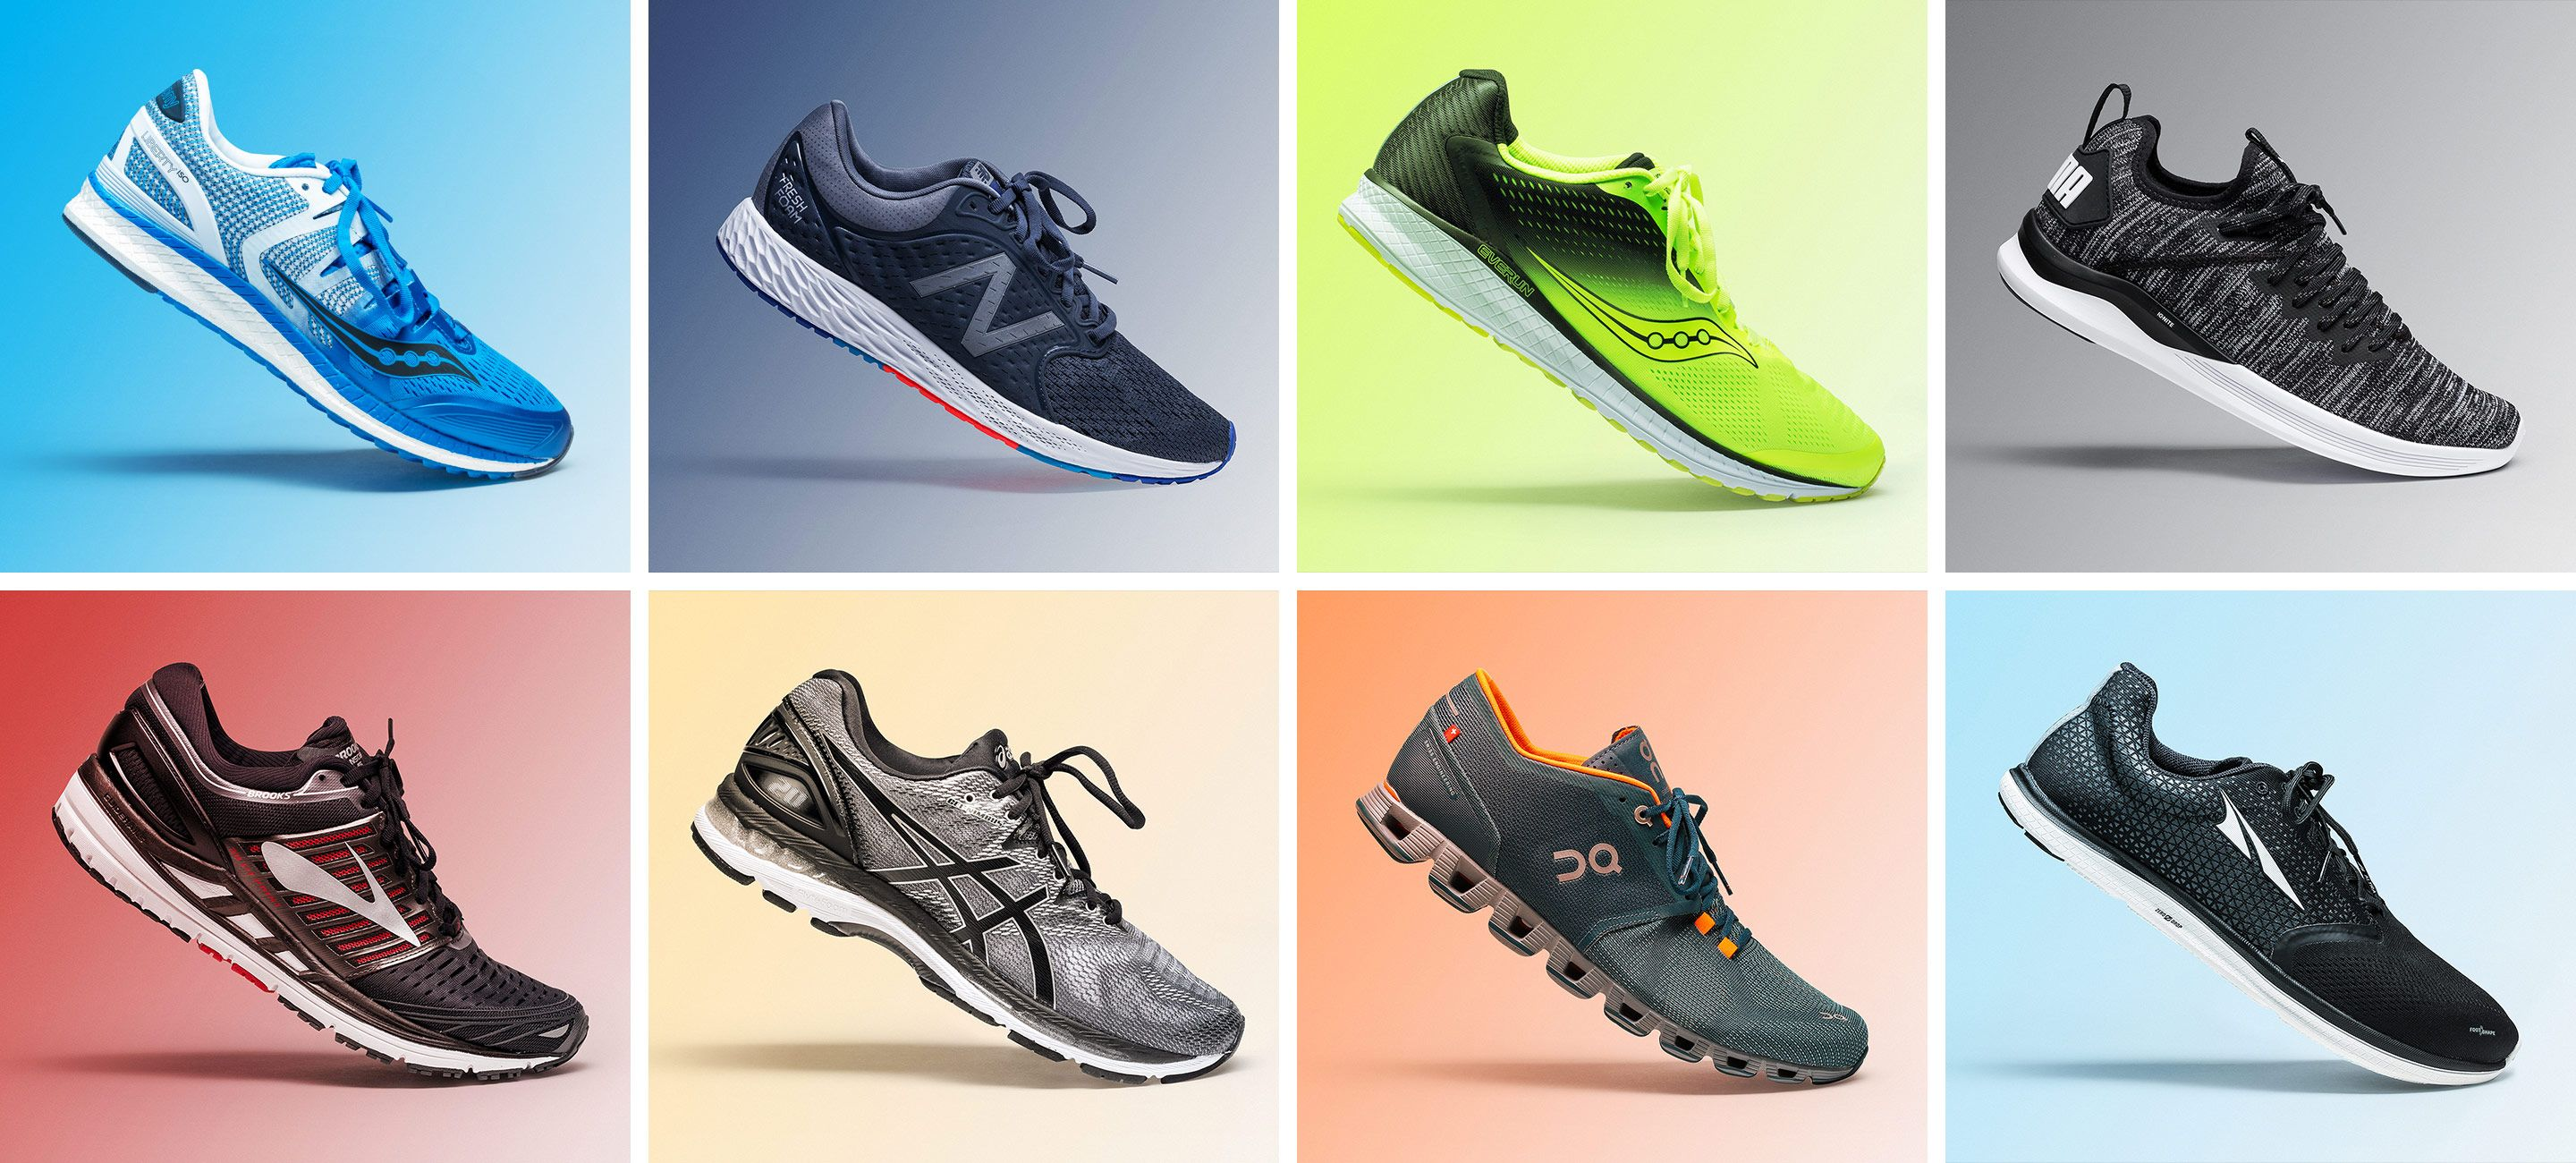 The 12 Best New Running Shoes in 2018 • Gear Patrol